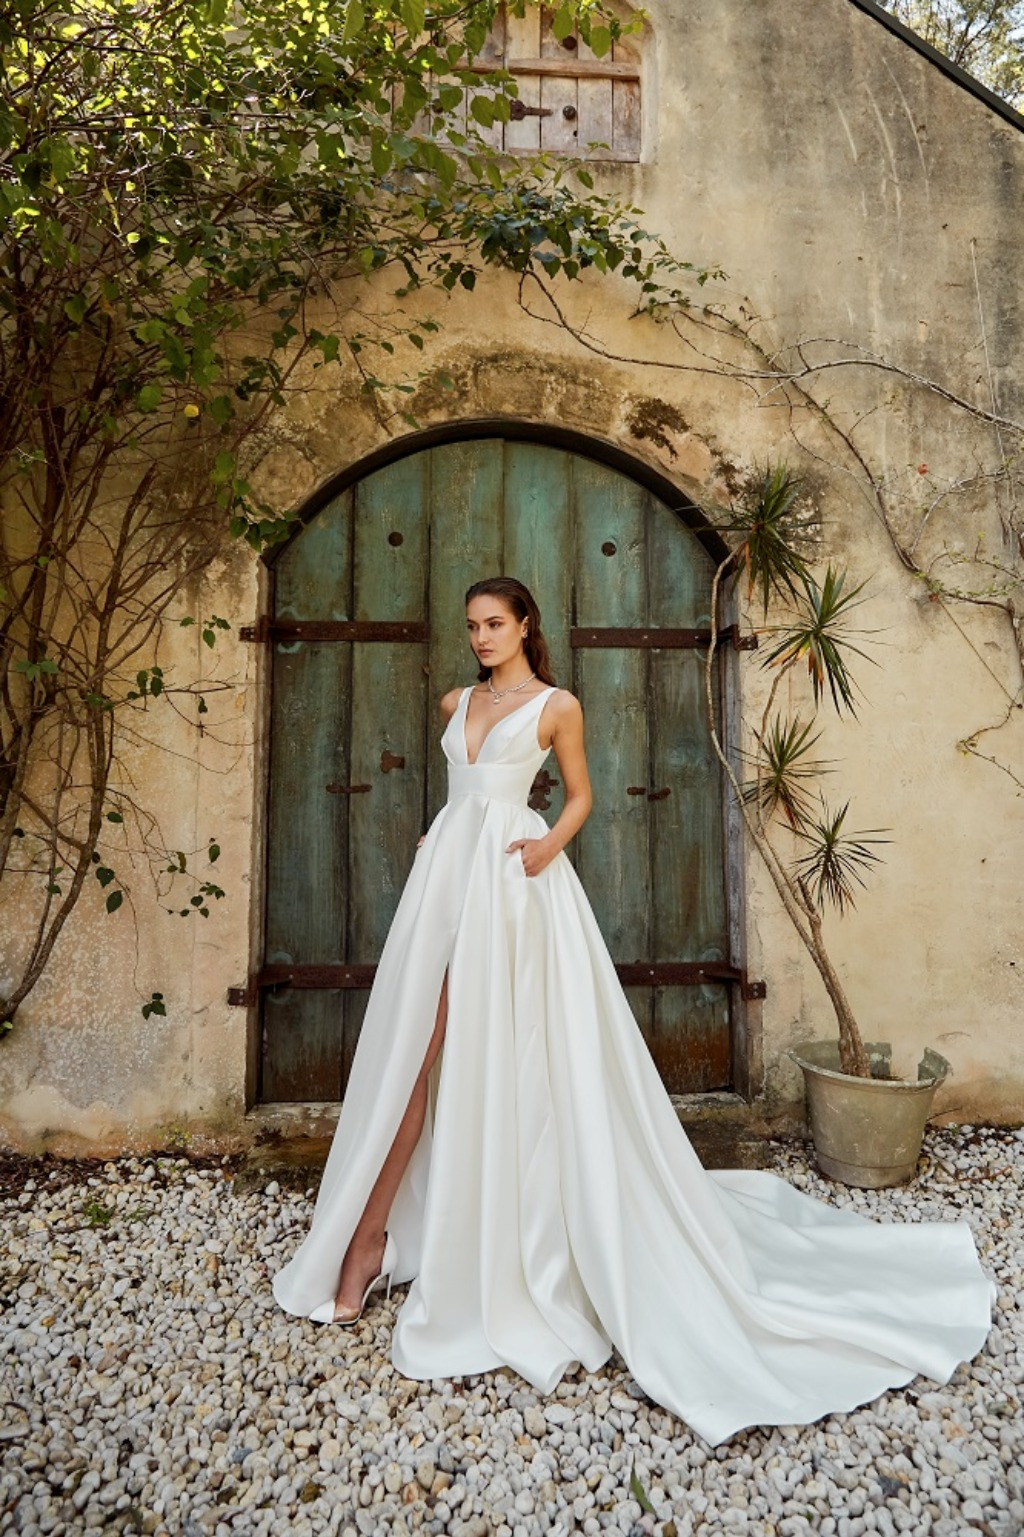 Leah Da Gloria Bridal Trunk Show